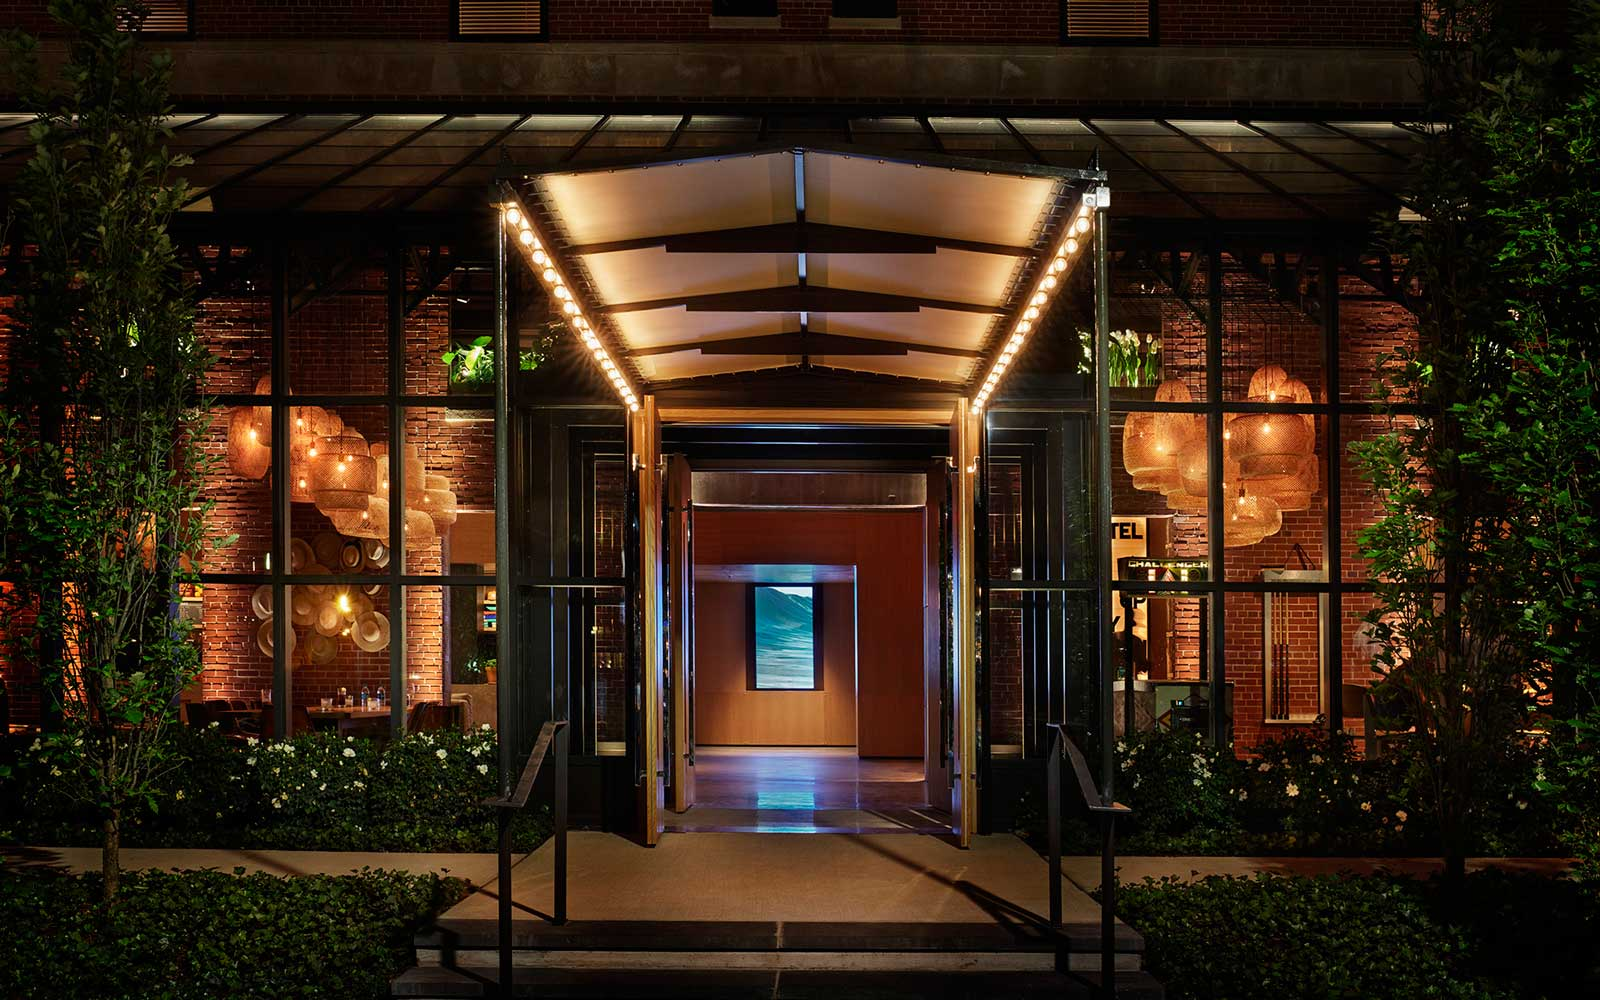 Entrance to hotel at night.